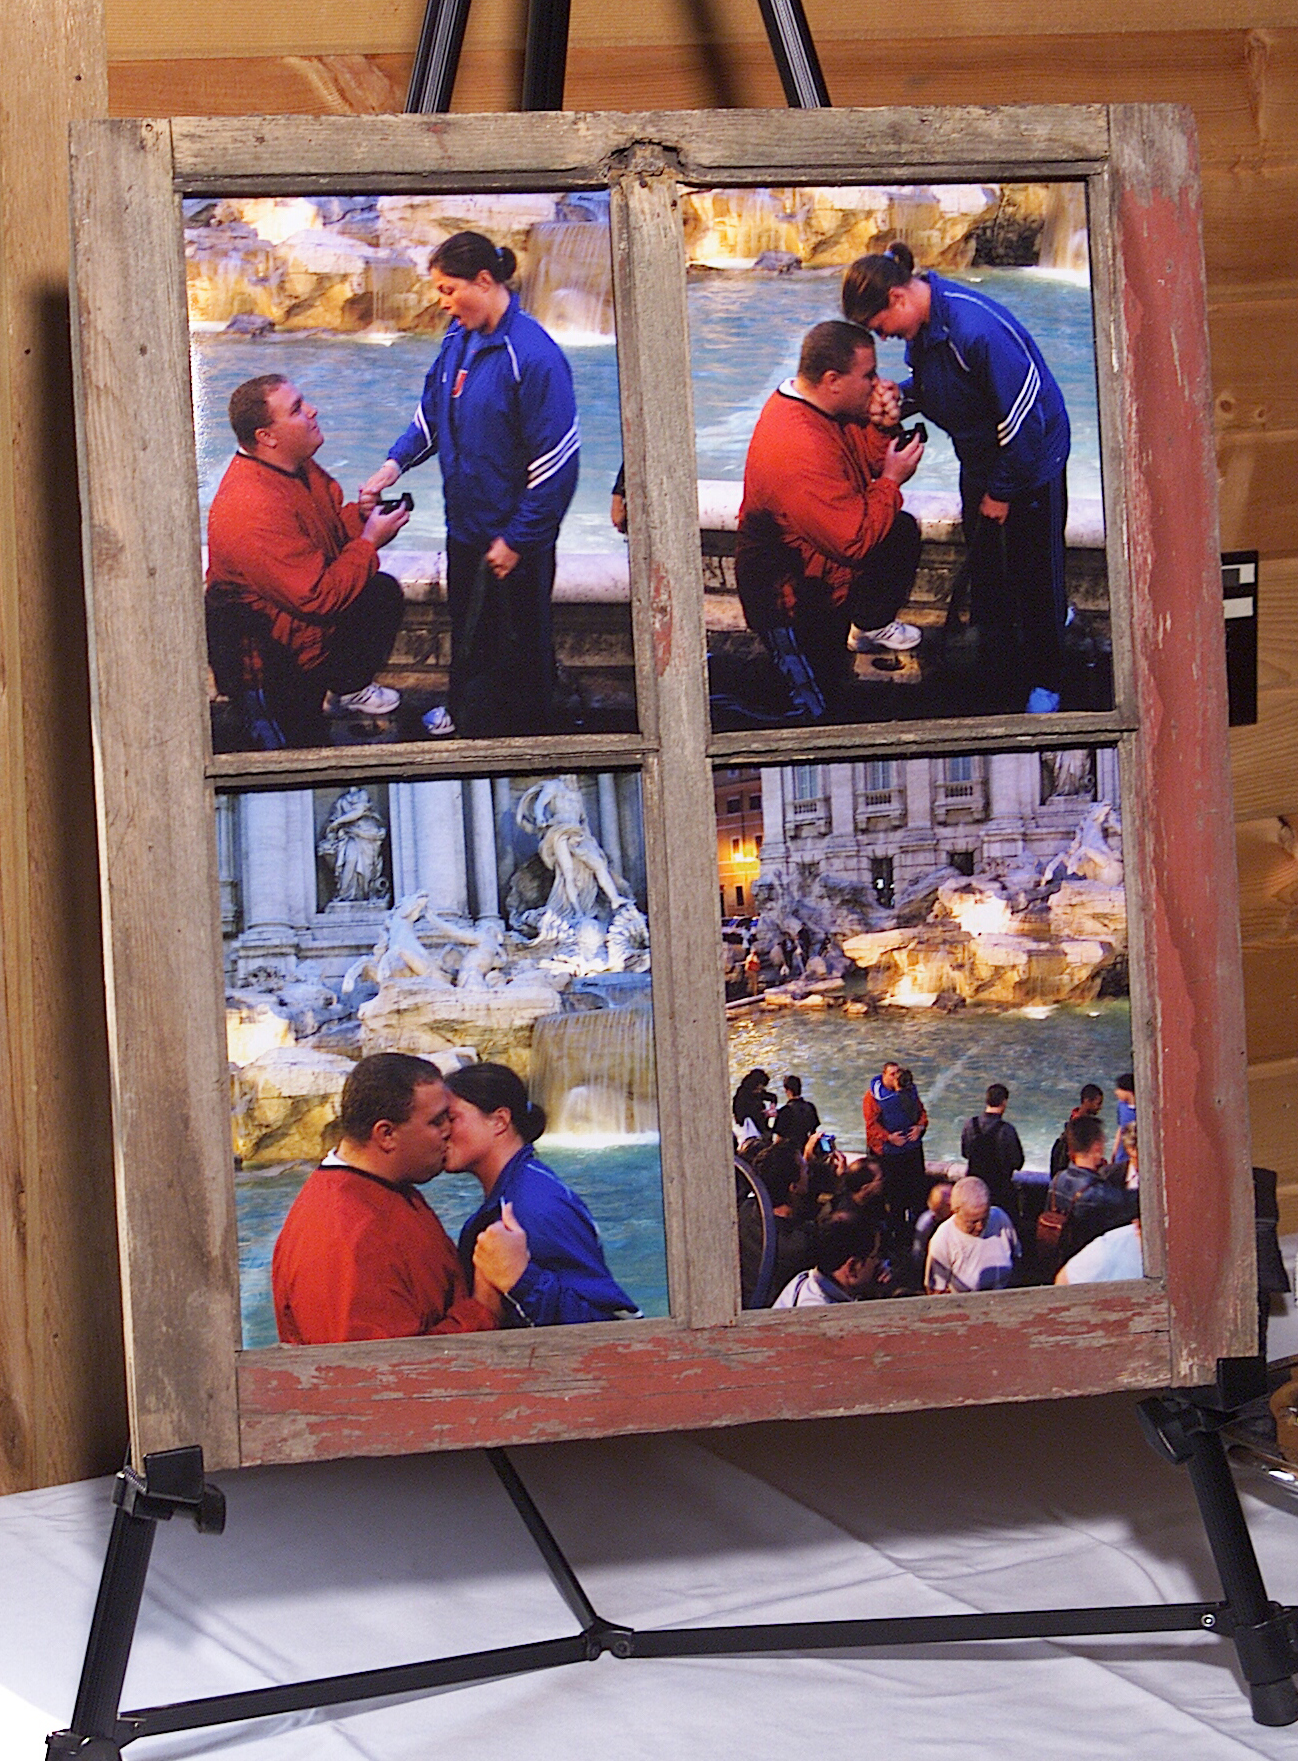 May 27, 2007:  The sequence of Joe proposing to Katie in front of Trevi Fountain, Rome, Italy.  Click photo to enlarge.  (The wood frame is from the barn, built in 1904, at the homeplace where my father was raised.)